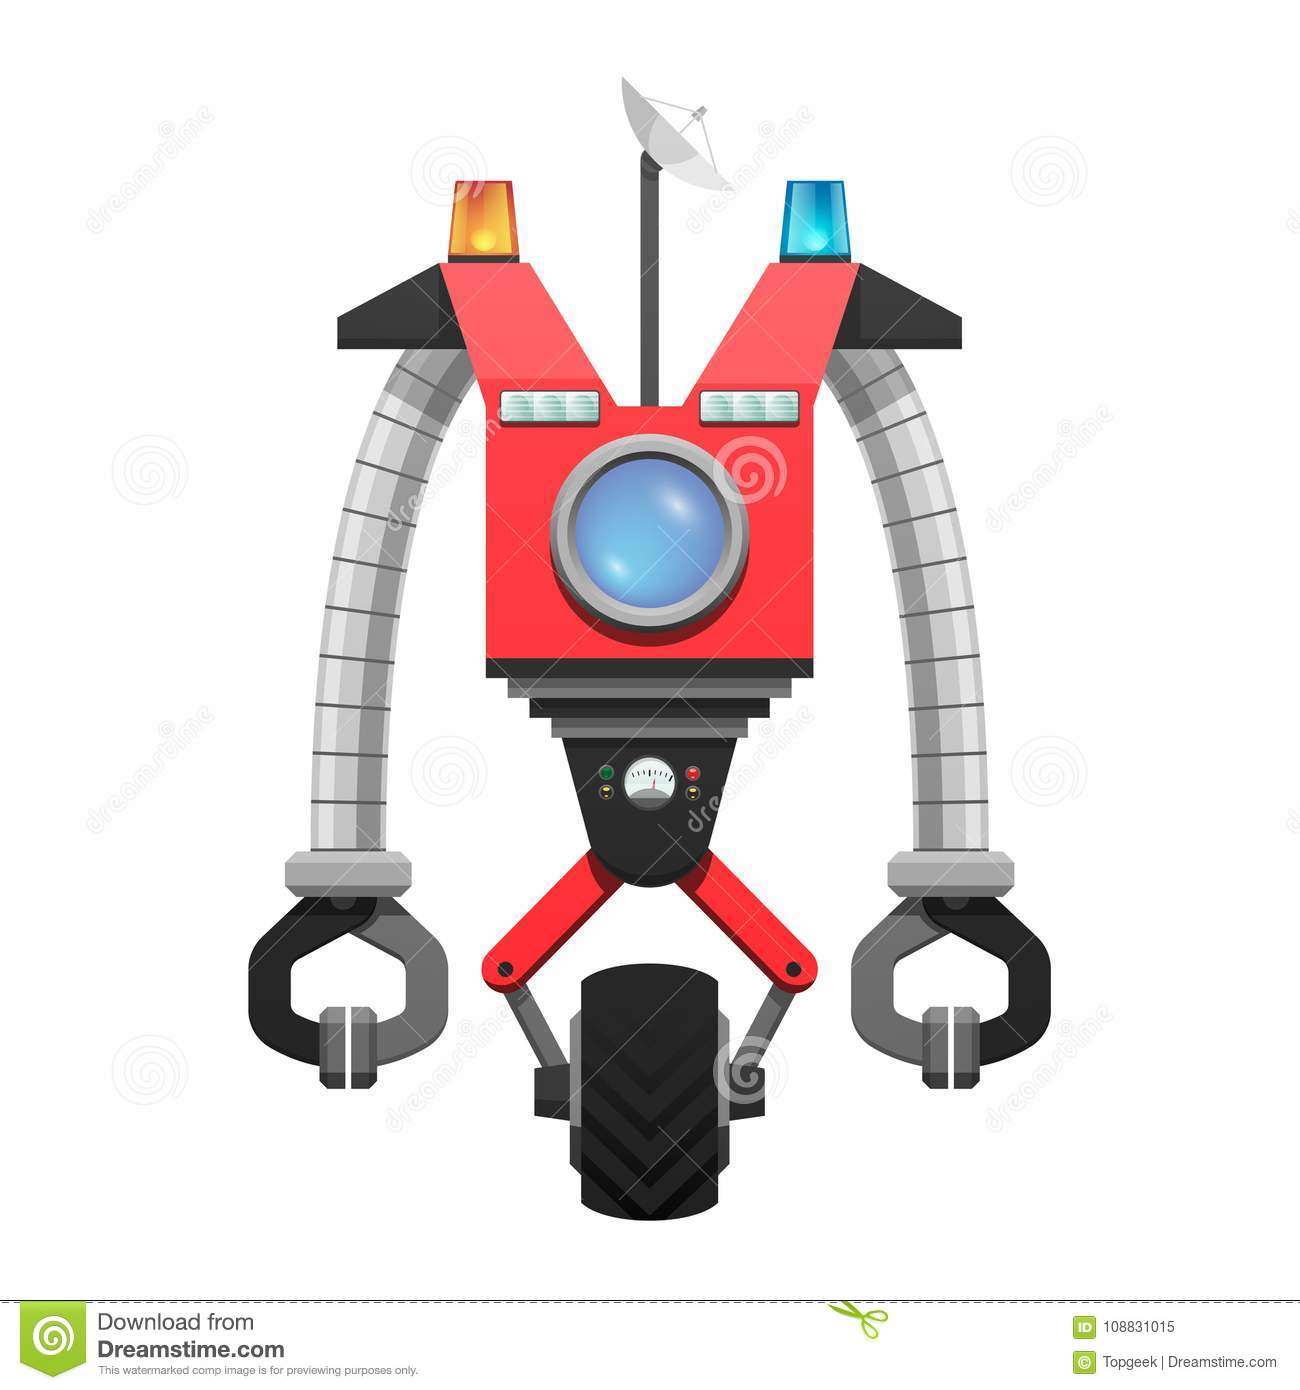 Red Robot with Satellite and Screen Illustration